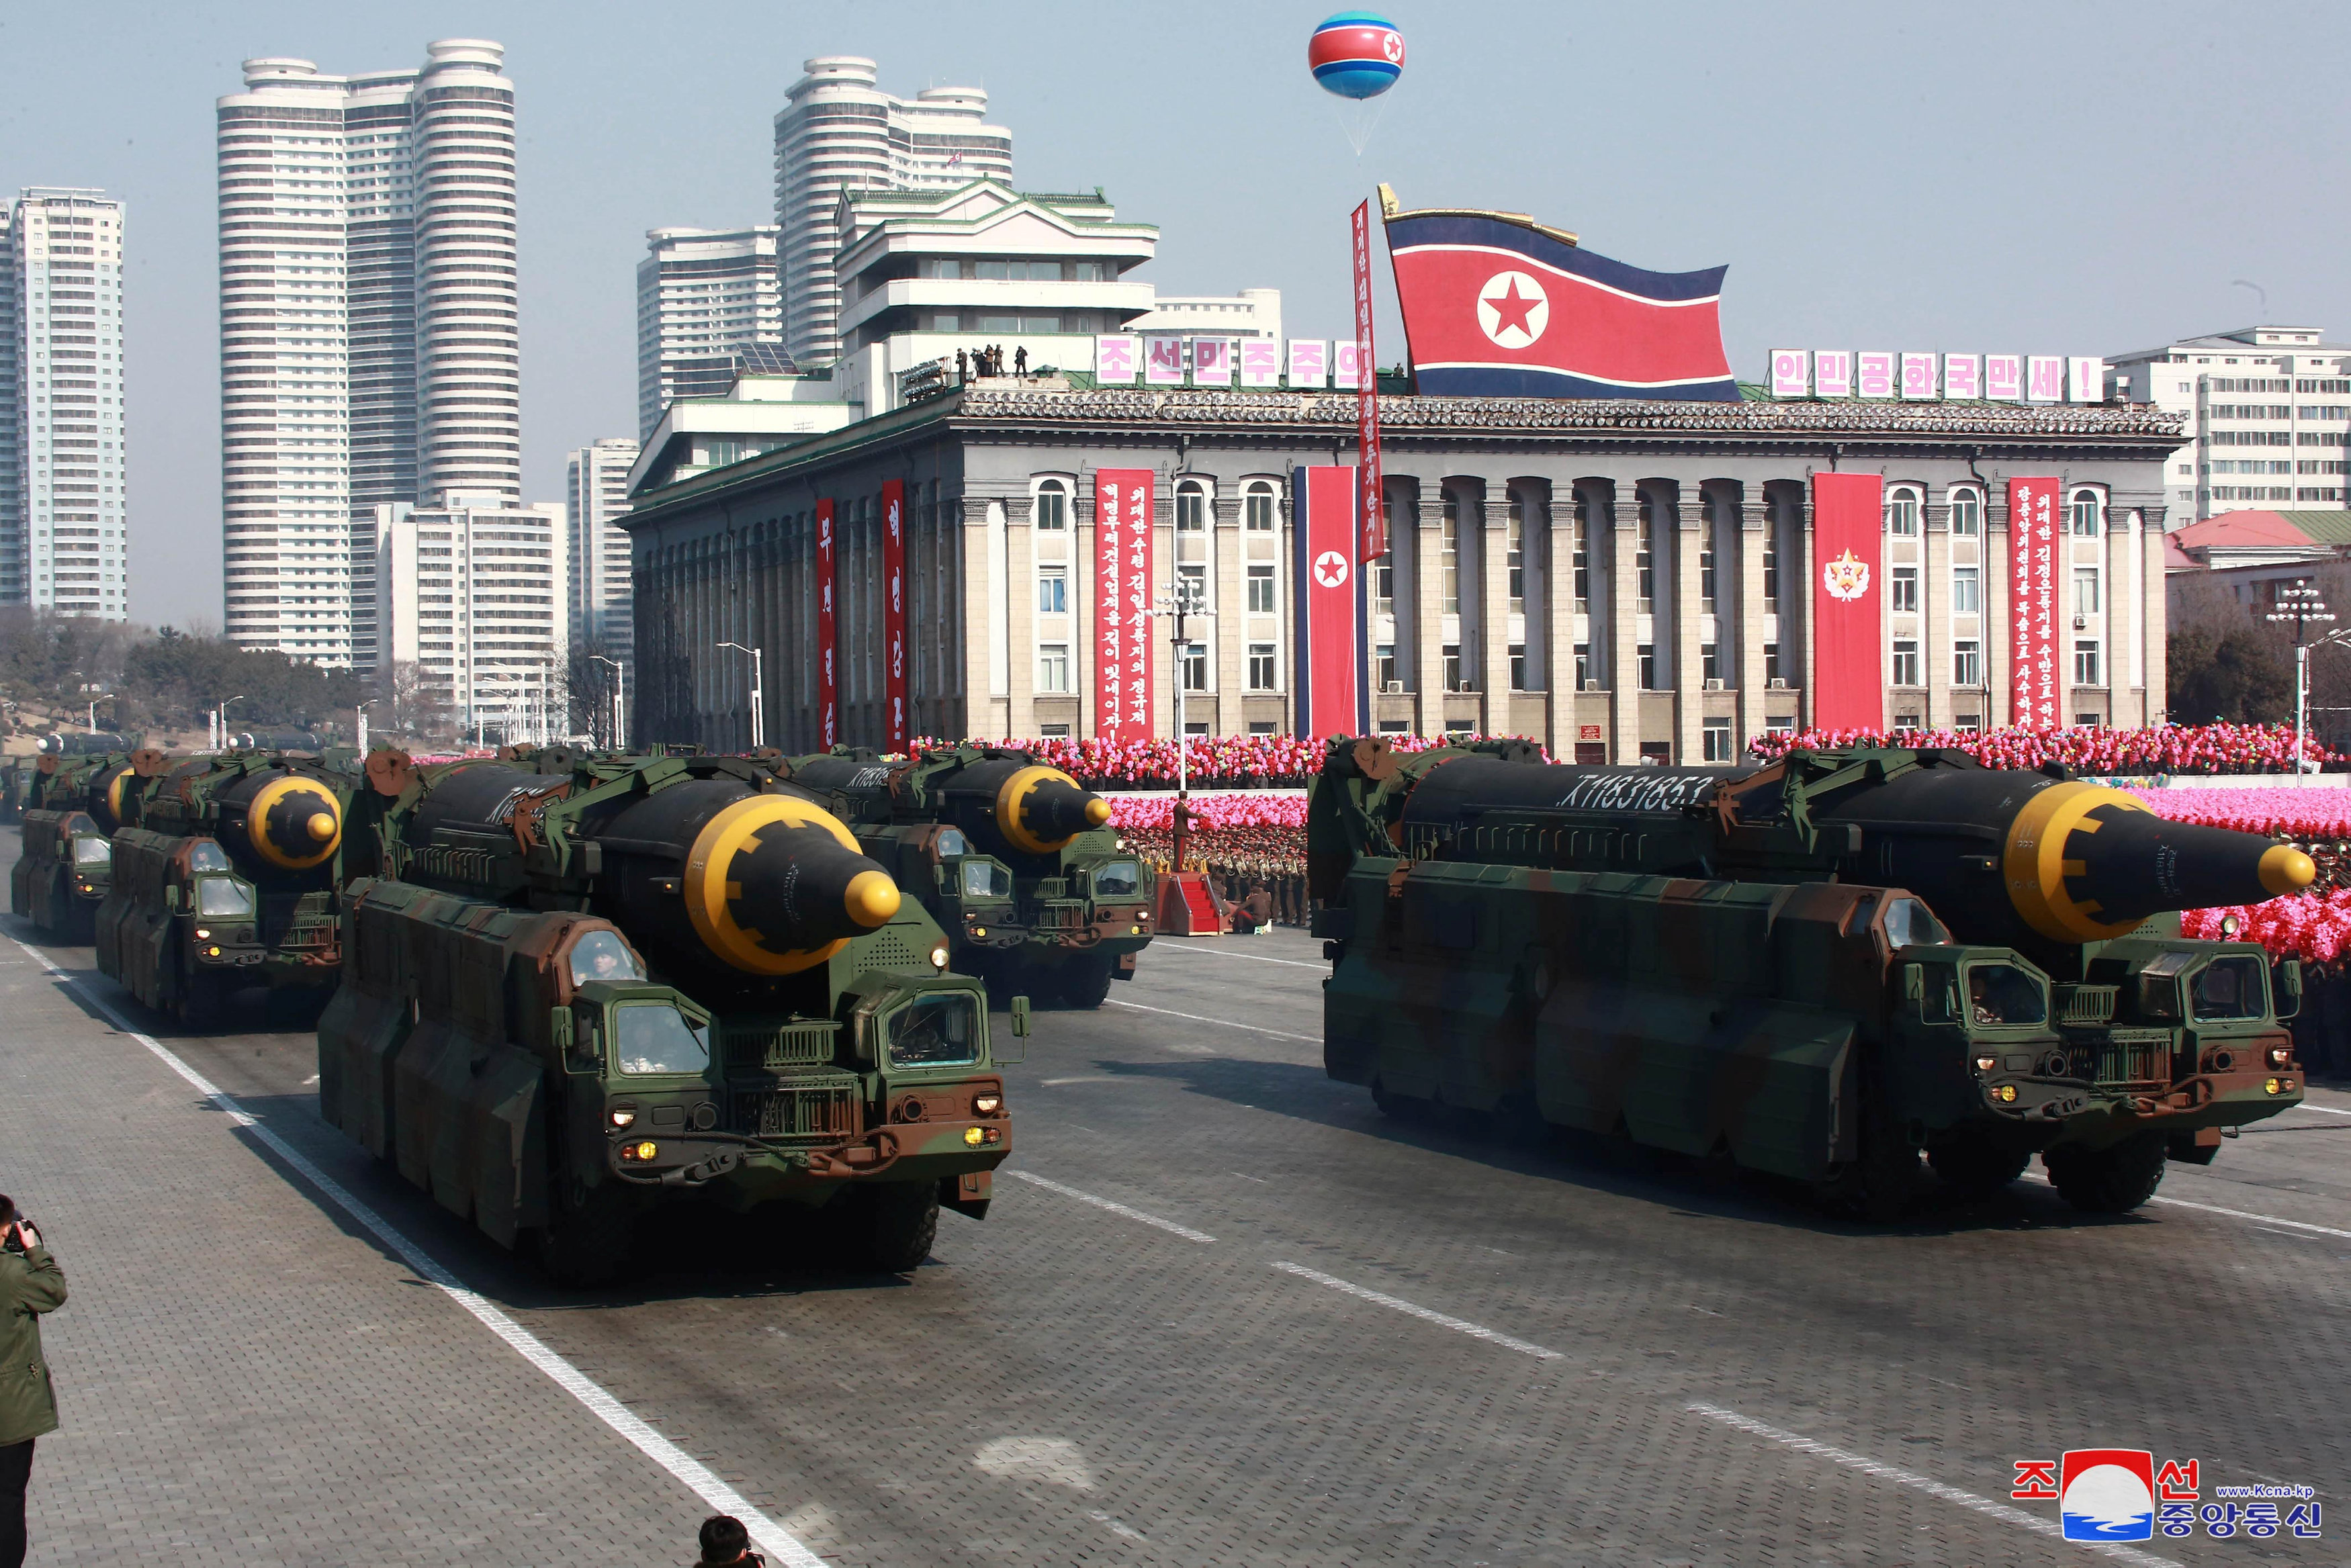 FILE PHOTO - Intercontinental ballistic missiles are seen at a grand military parade celebrating the 70th founding anniversary of the Korean People's Army at the Kim Il Sung Square in Pyongyang, in this photo released by North Korea's Korean Central News Agency (KCNA) February 9, 2018. KCNA/via REUTERS